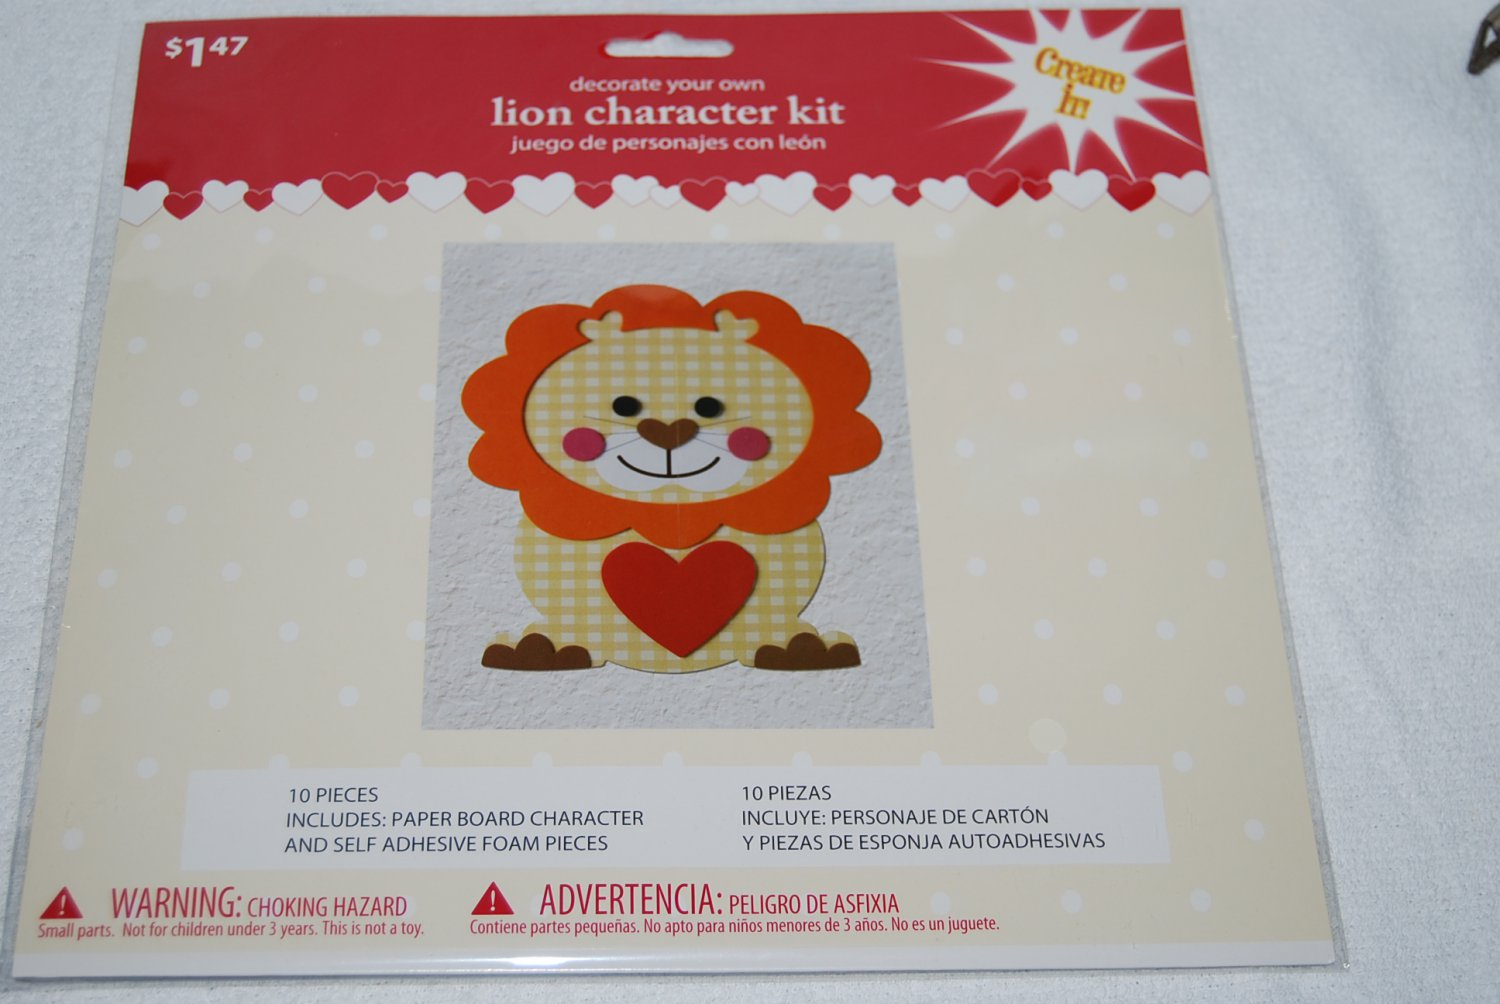 Decorate Your Own Yellow Lion Character Kit